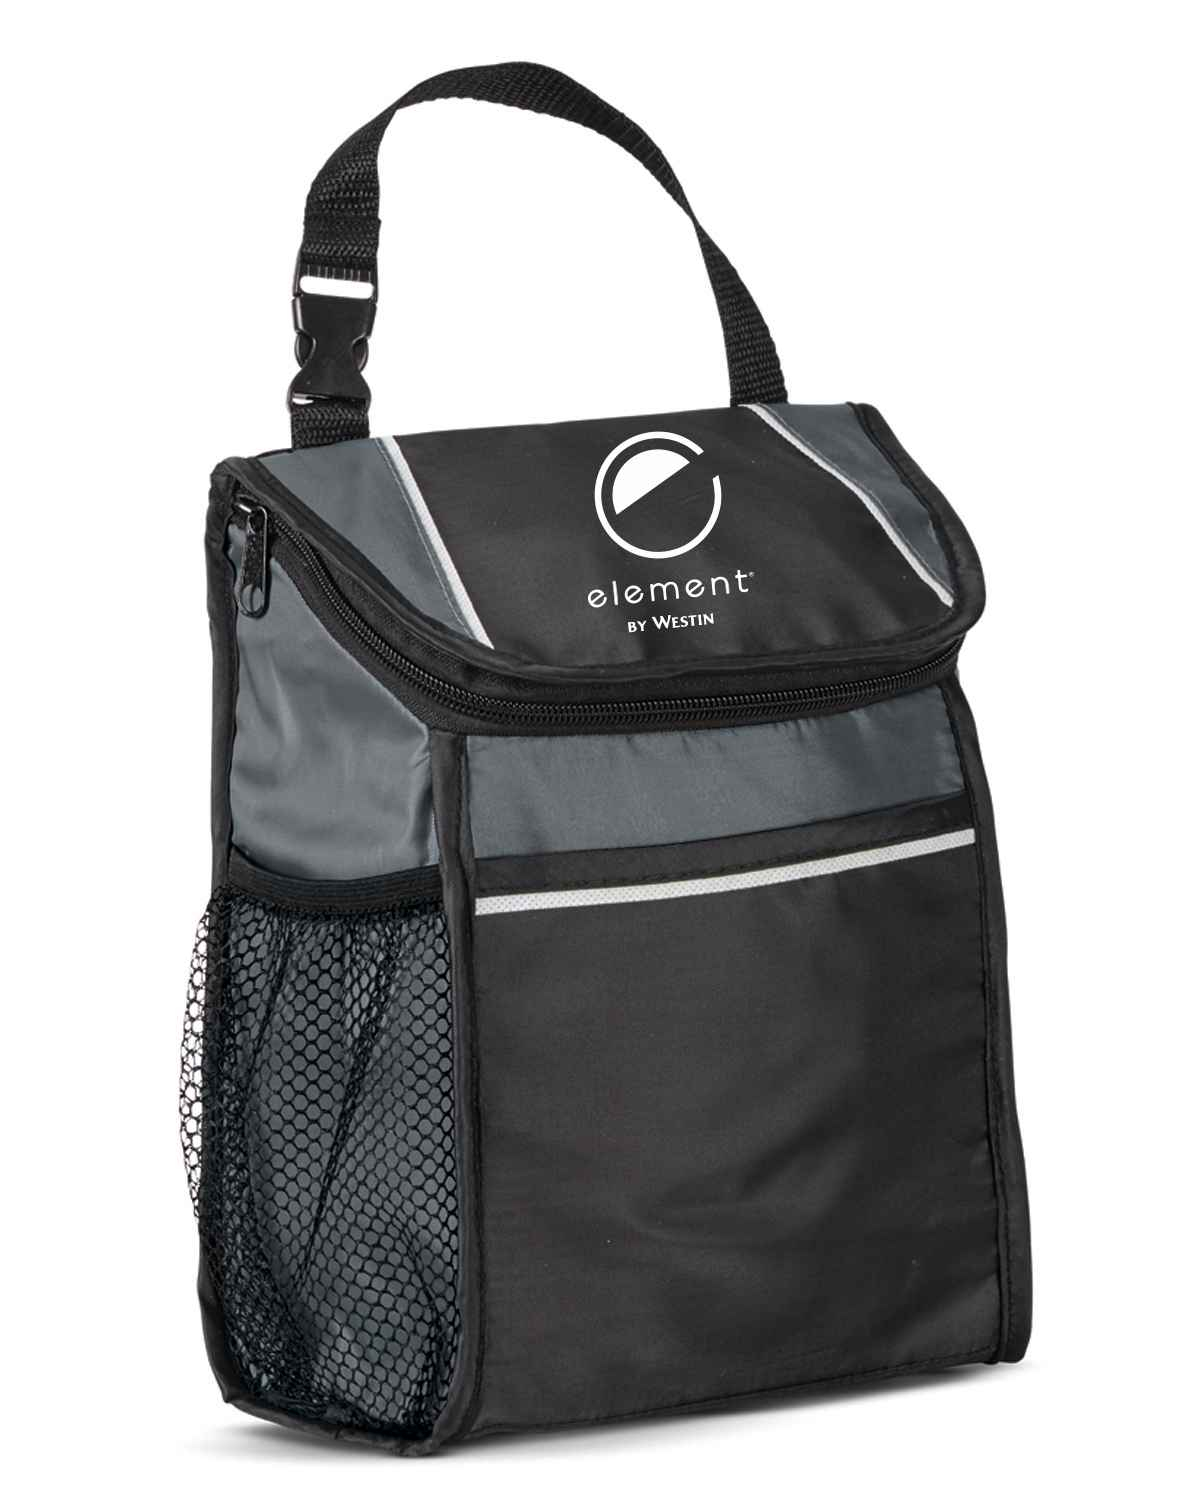 """Lunch Cooler with Thermal Lining. 9""""L x 10""""H x 3.5""""W - 6 Can Capacity - Zippered Closure - Front Pocket - Side Mesh Watter Bottle Pocket - Removable I.D. Tag - Phthalate and PVC Free"""